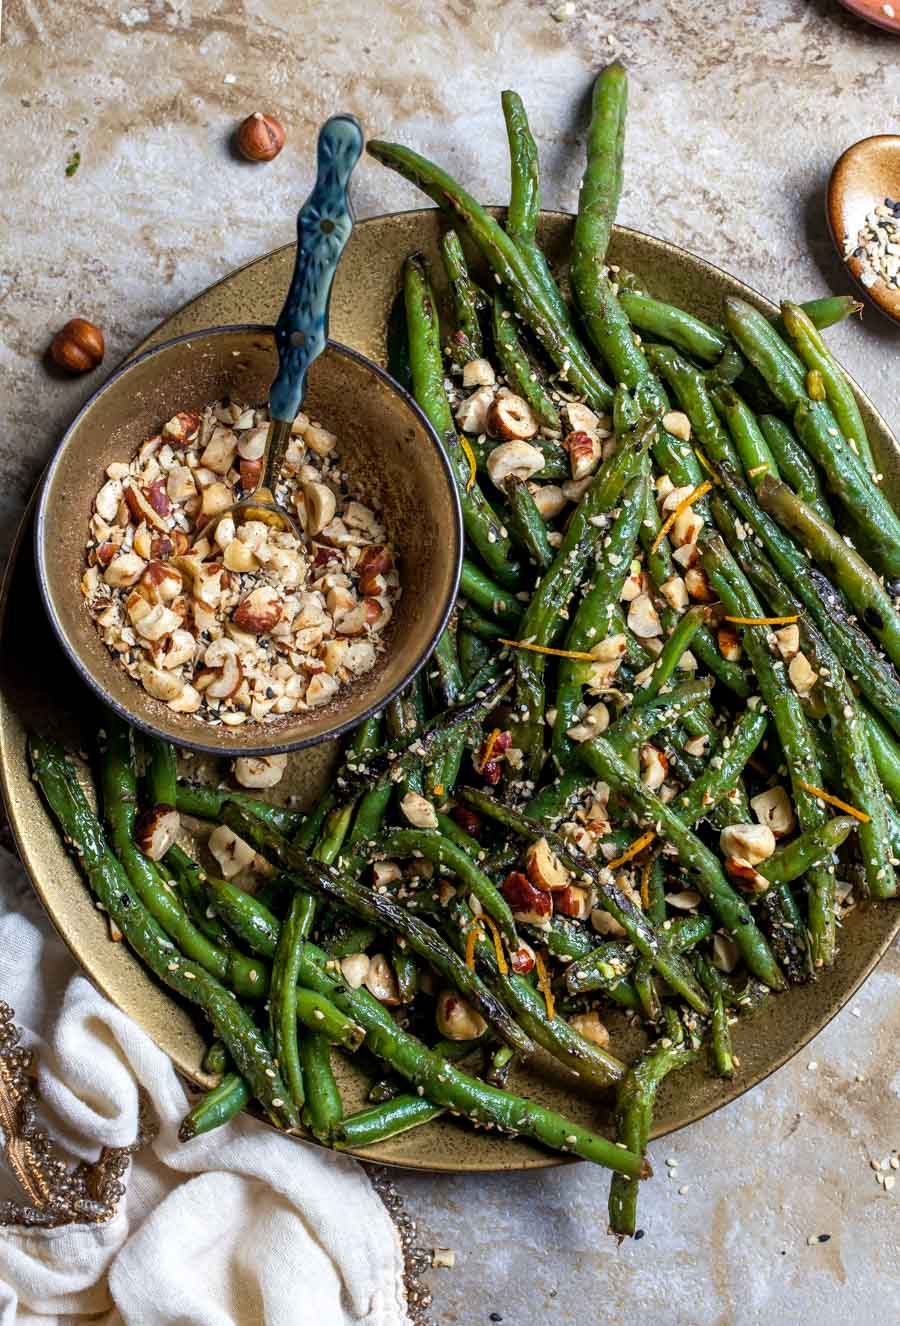 Browned Butter Green Beans with Hazelnut Dukkah (5 Ingredients)